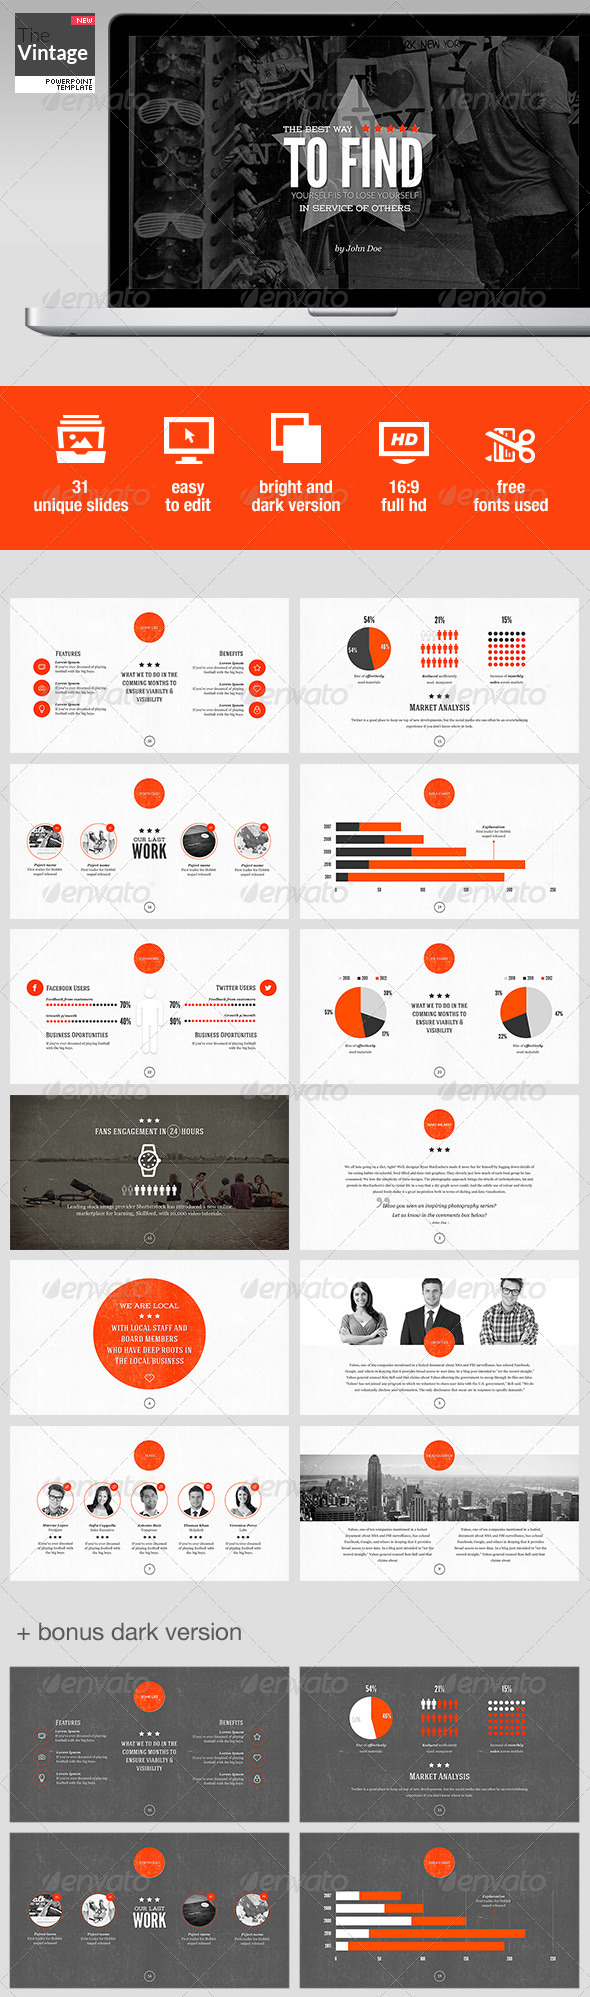 GraphicRiver TheVintage Powerpoint Template 5372757